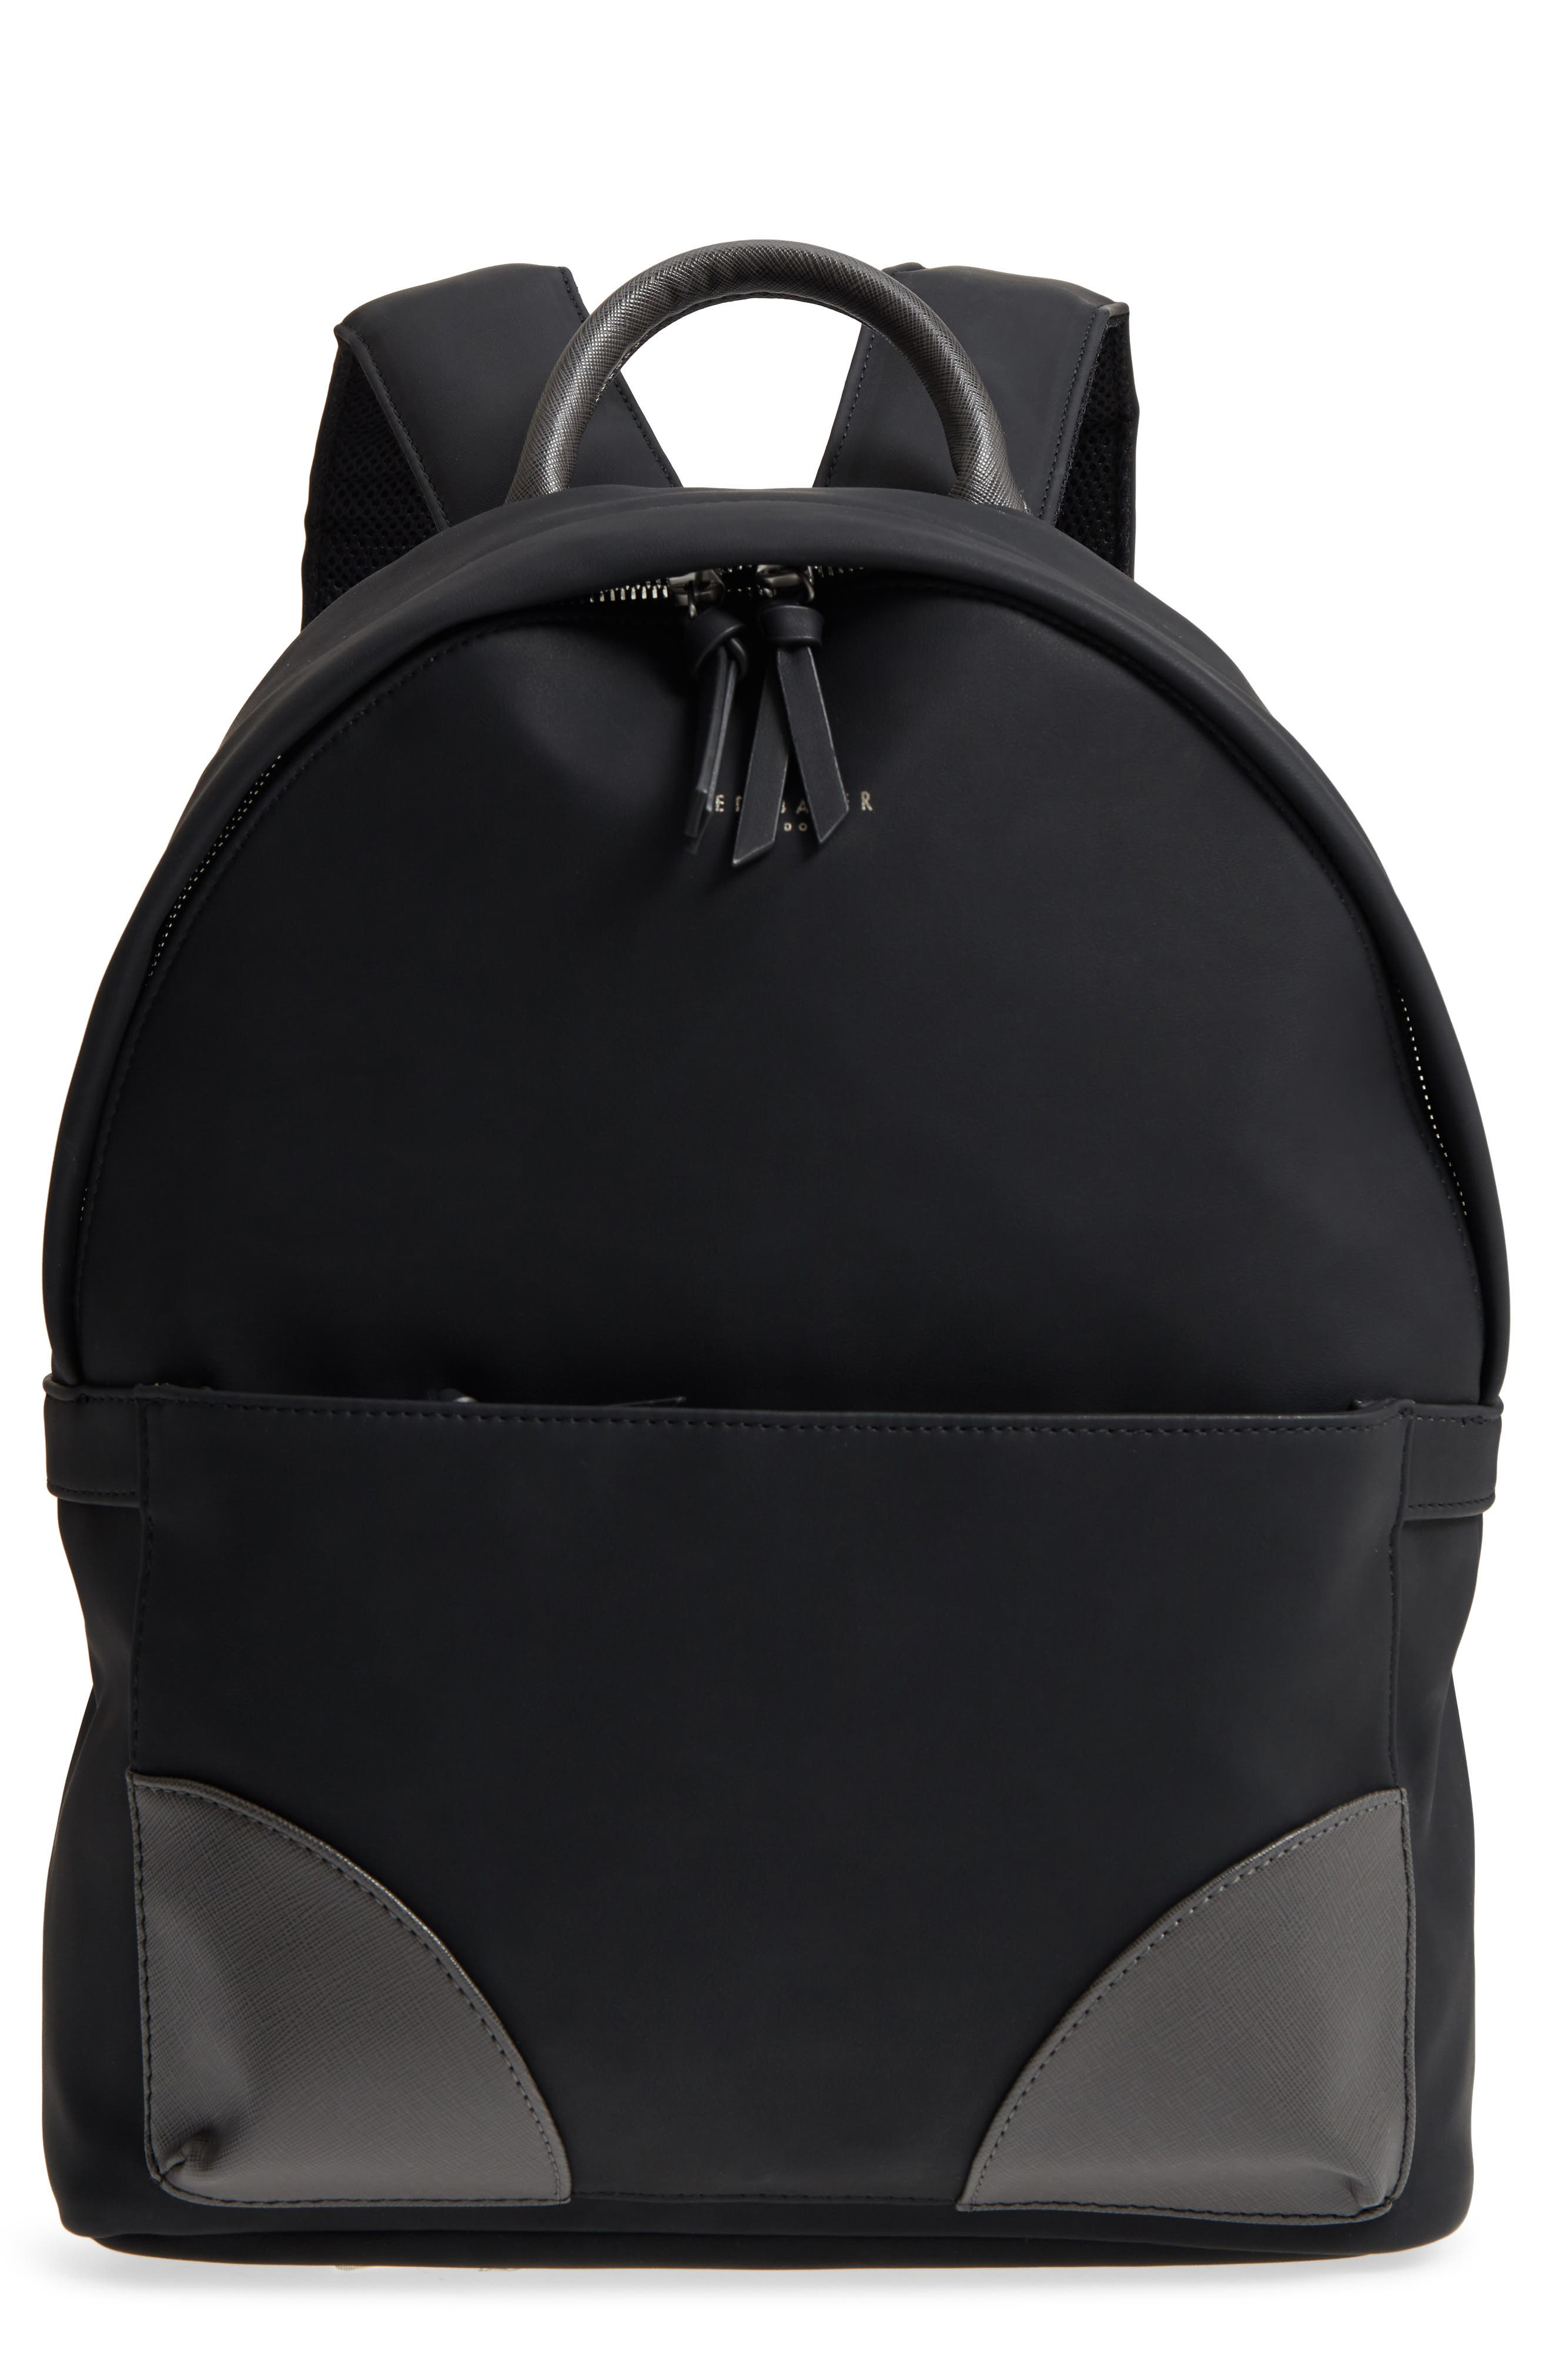 Passed Faux Leather Backpack,                             Main thumbnail 1, color,                             001